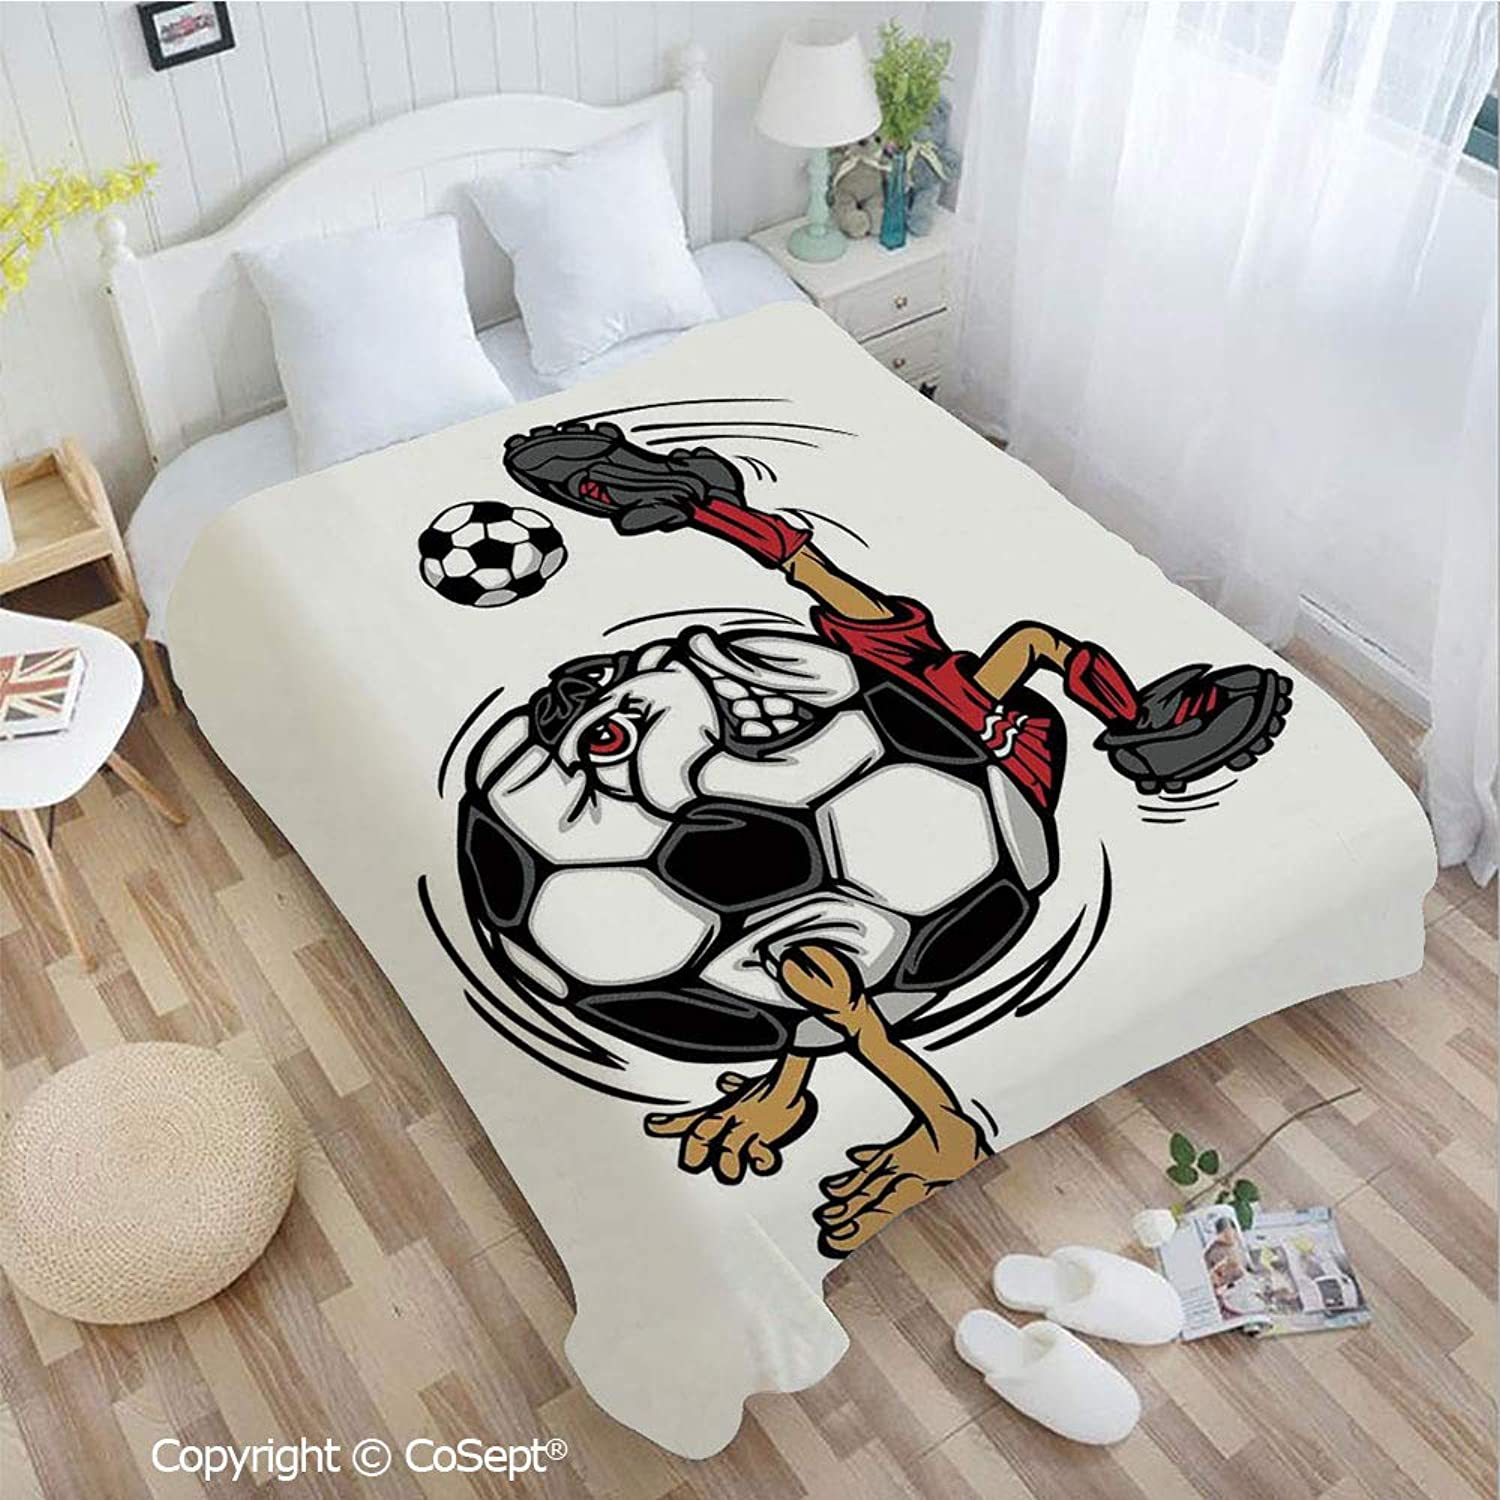 Lightweight Cozy Flannel Blanket,Soccer Football Player Cartoon Character Kicking Playing Exercising Theme,fit Couch Sofa Suitable for All Season(72.83  x 78.74 ),